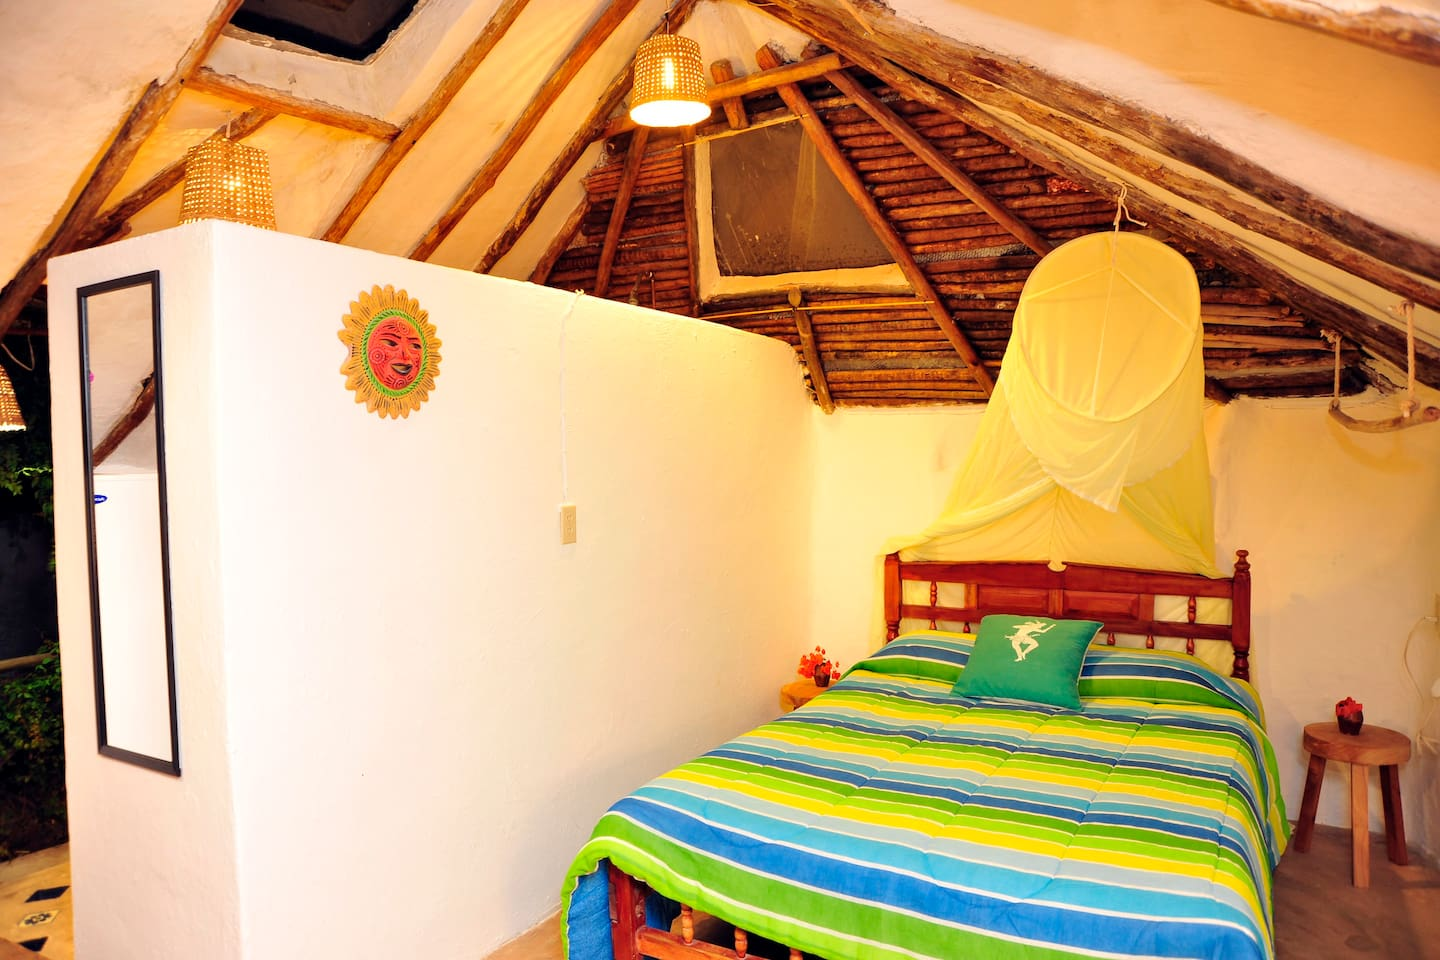 Casitas Kinsol - (website hidden) - Room #7 - With a full-size bed